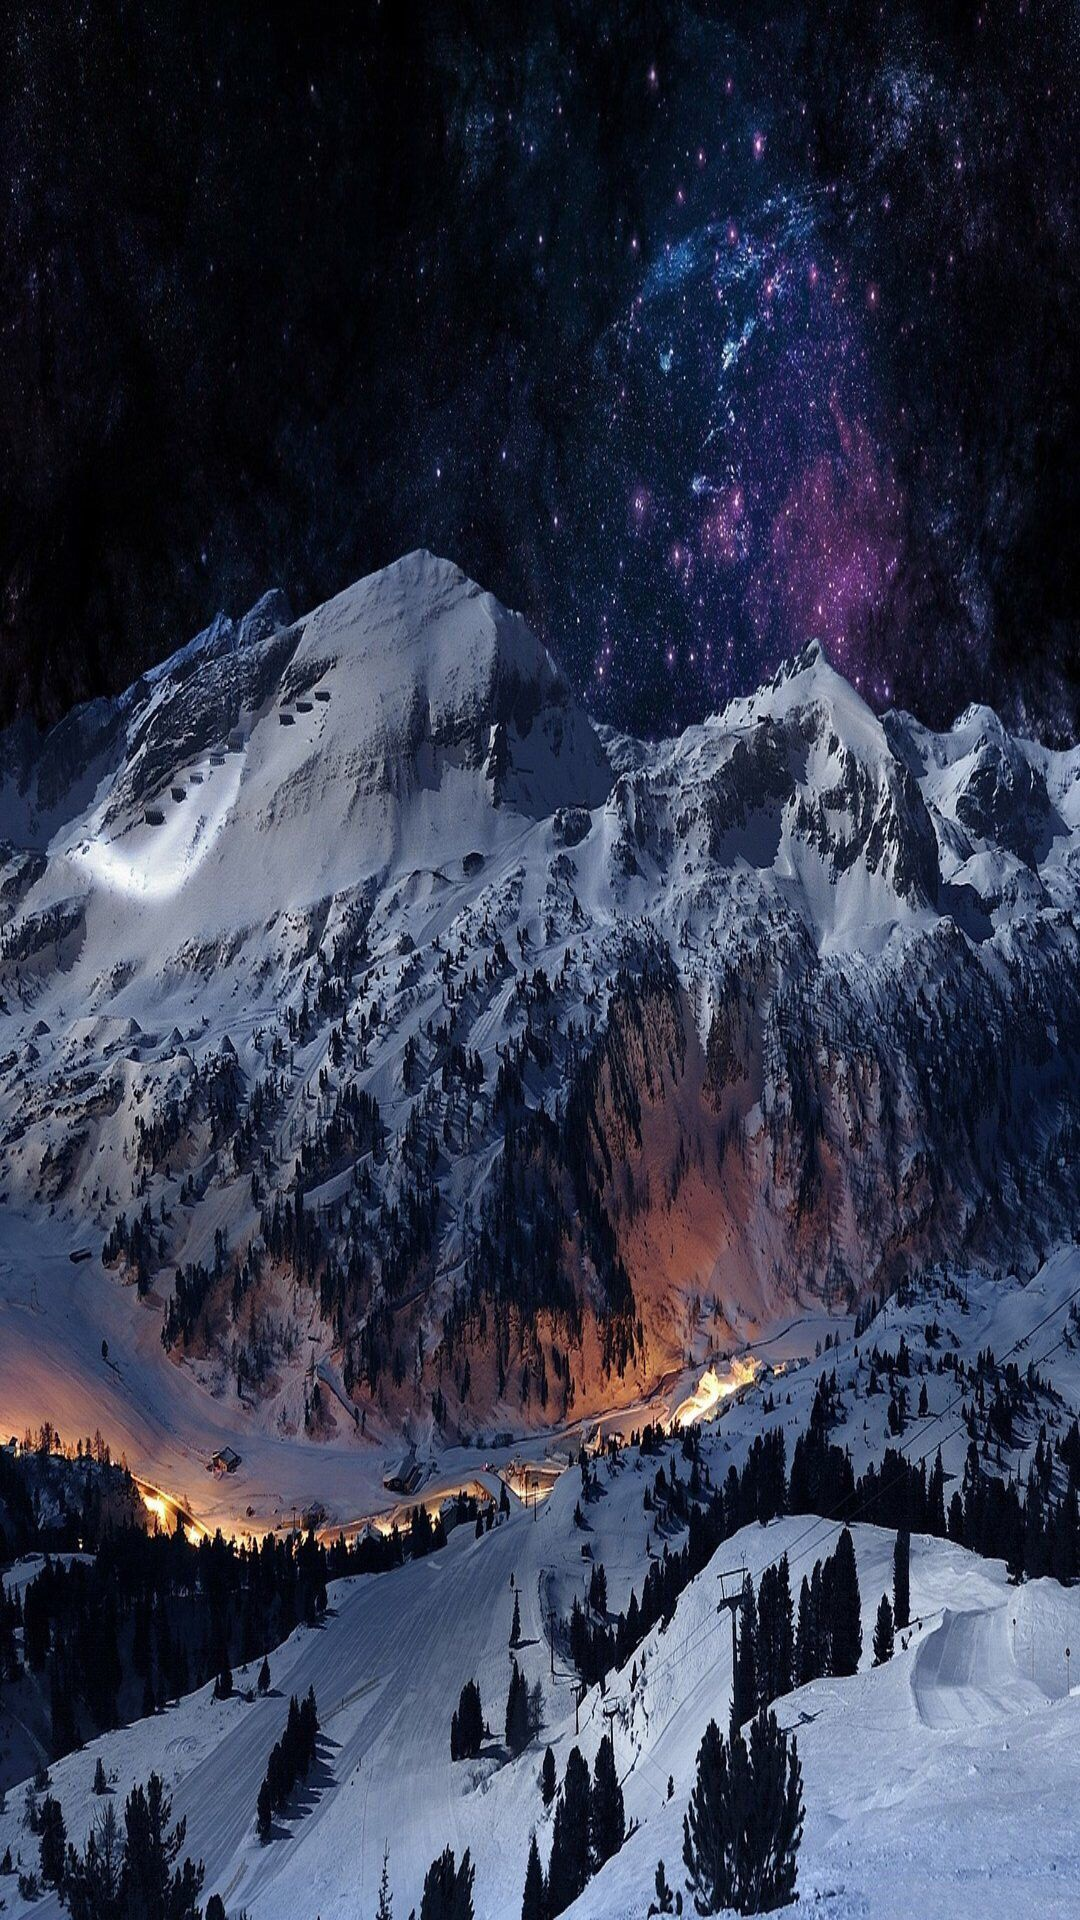 iPhone wallpaper | iPhone Wallpapers. | Winter mountain ...